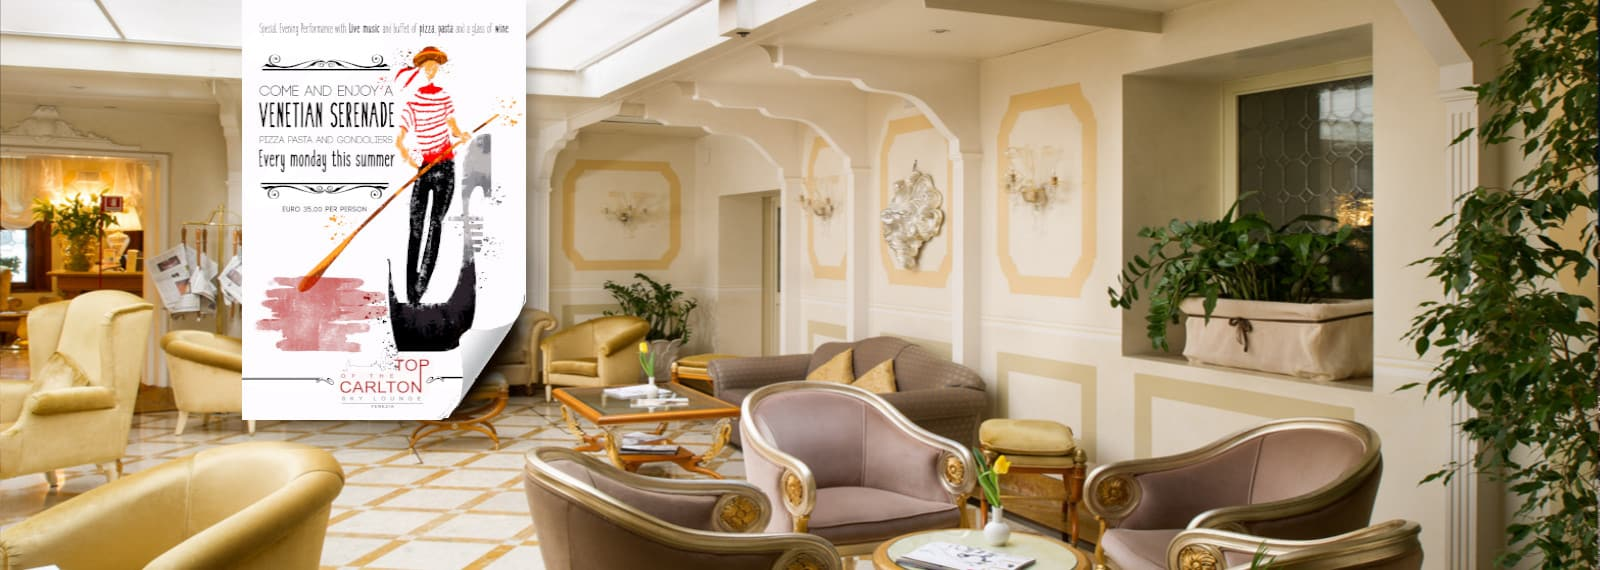 Hotel carlton on the grand canal 4 stars hotel in venice